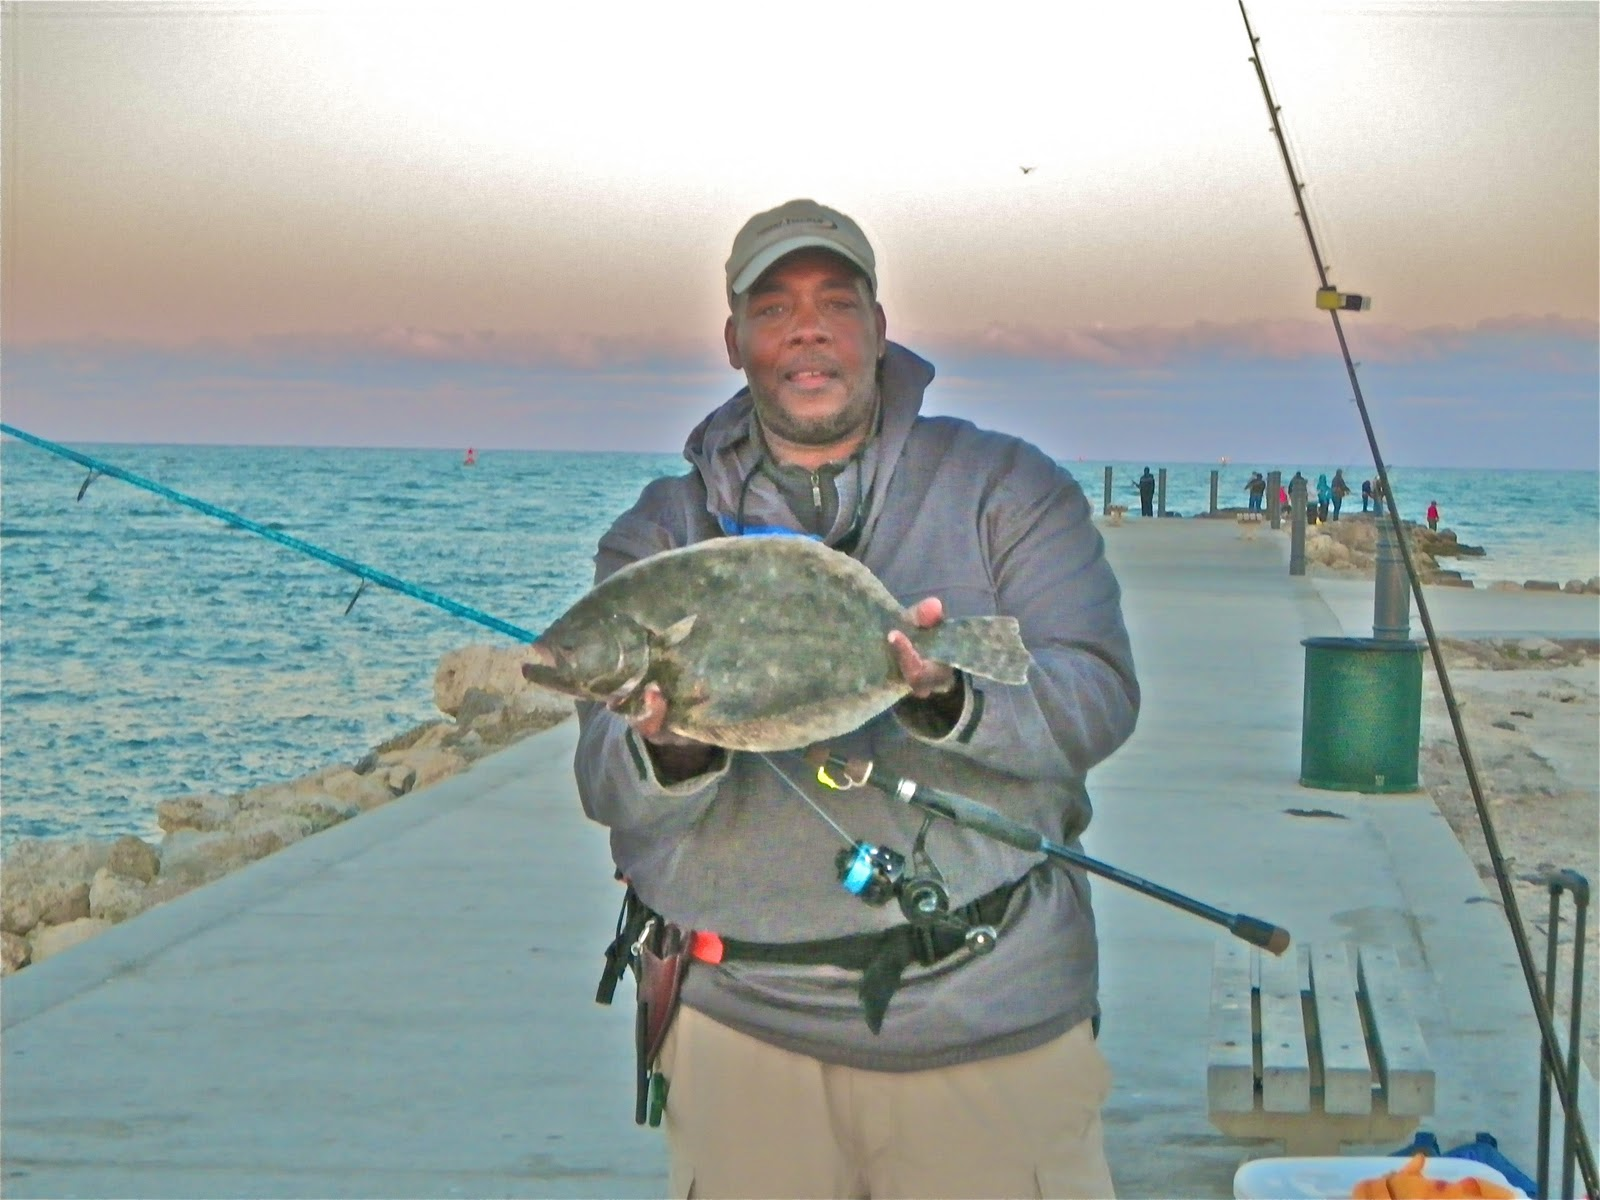 On foot angler march 2011 for Snook nook fishing report